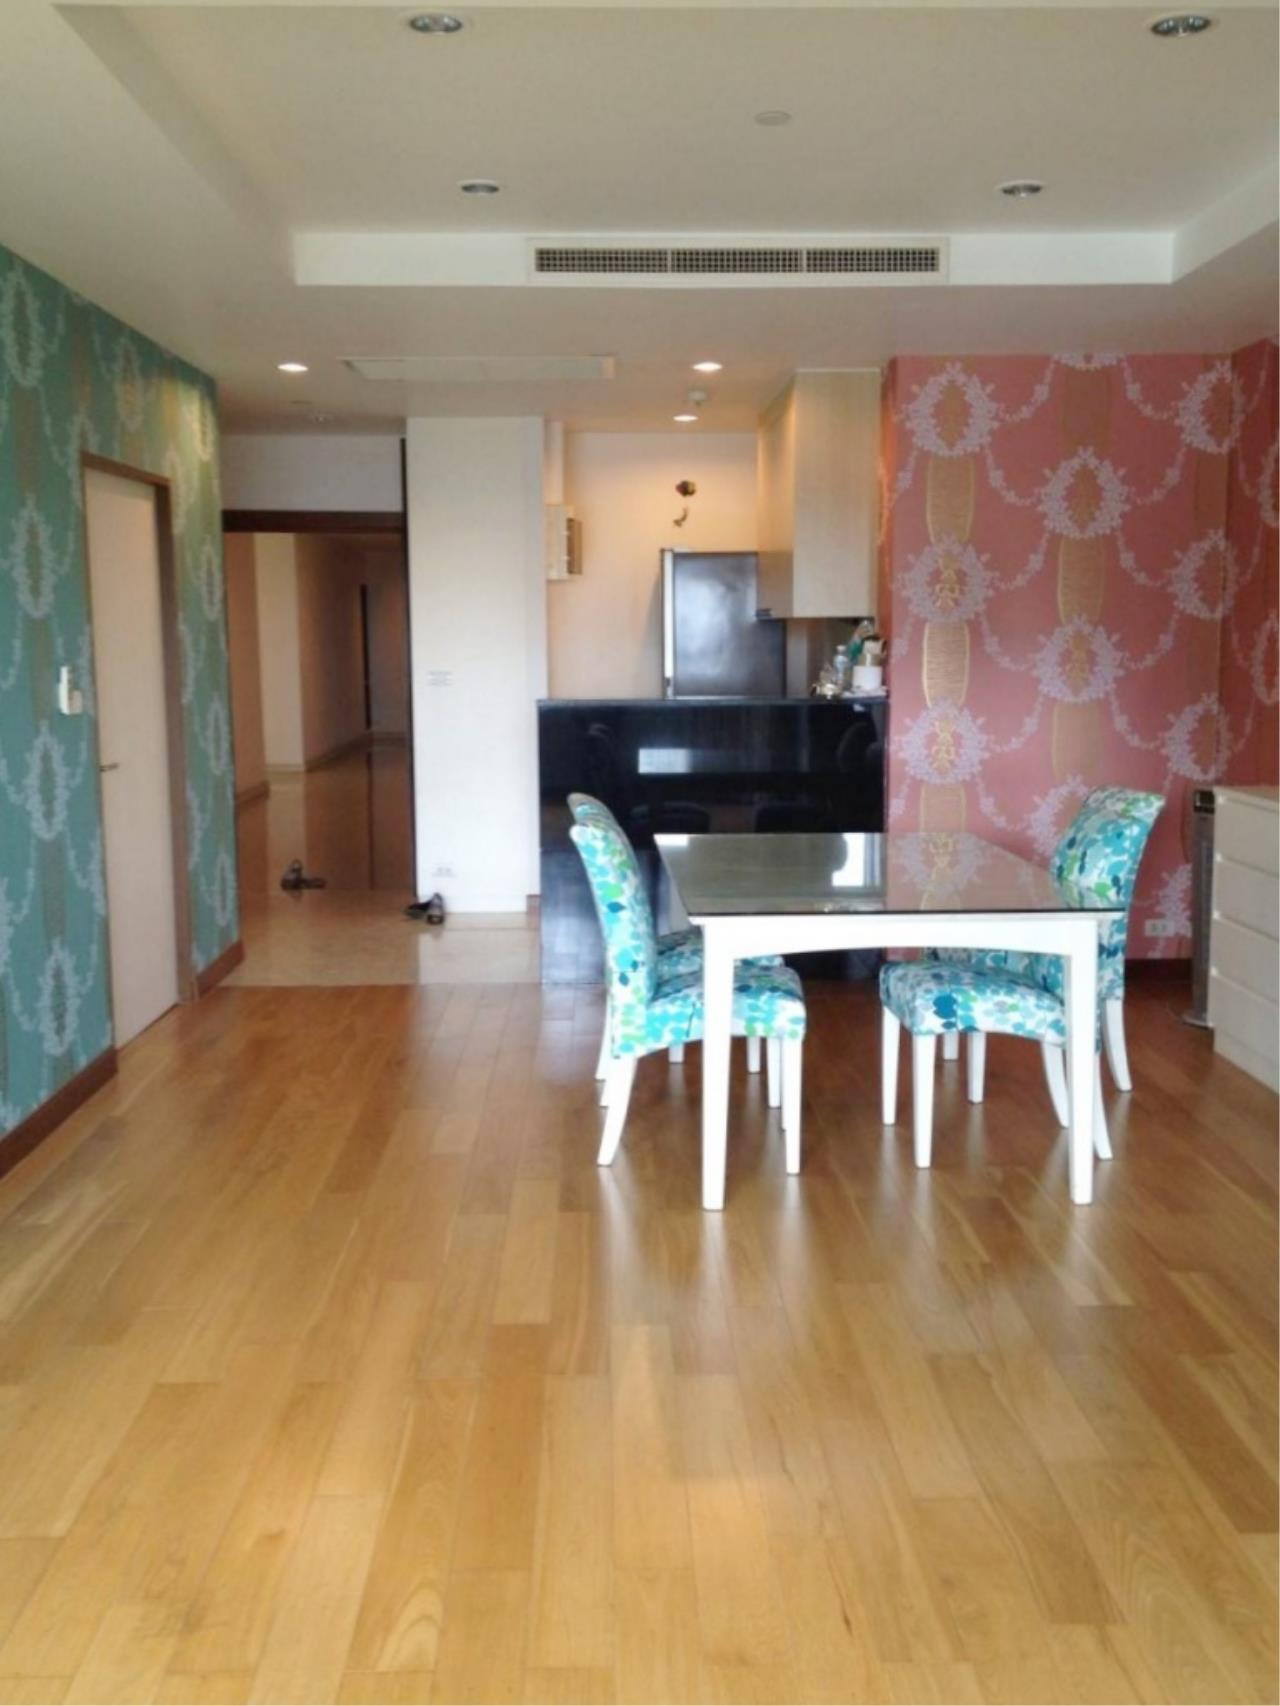 Century21 Skylux Agency's Sathorn Gardens / Condo For Sale / 1 Bedroom / 64 SQM / BTS Chong Nonsi / Bangkok 2